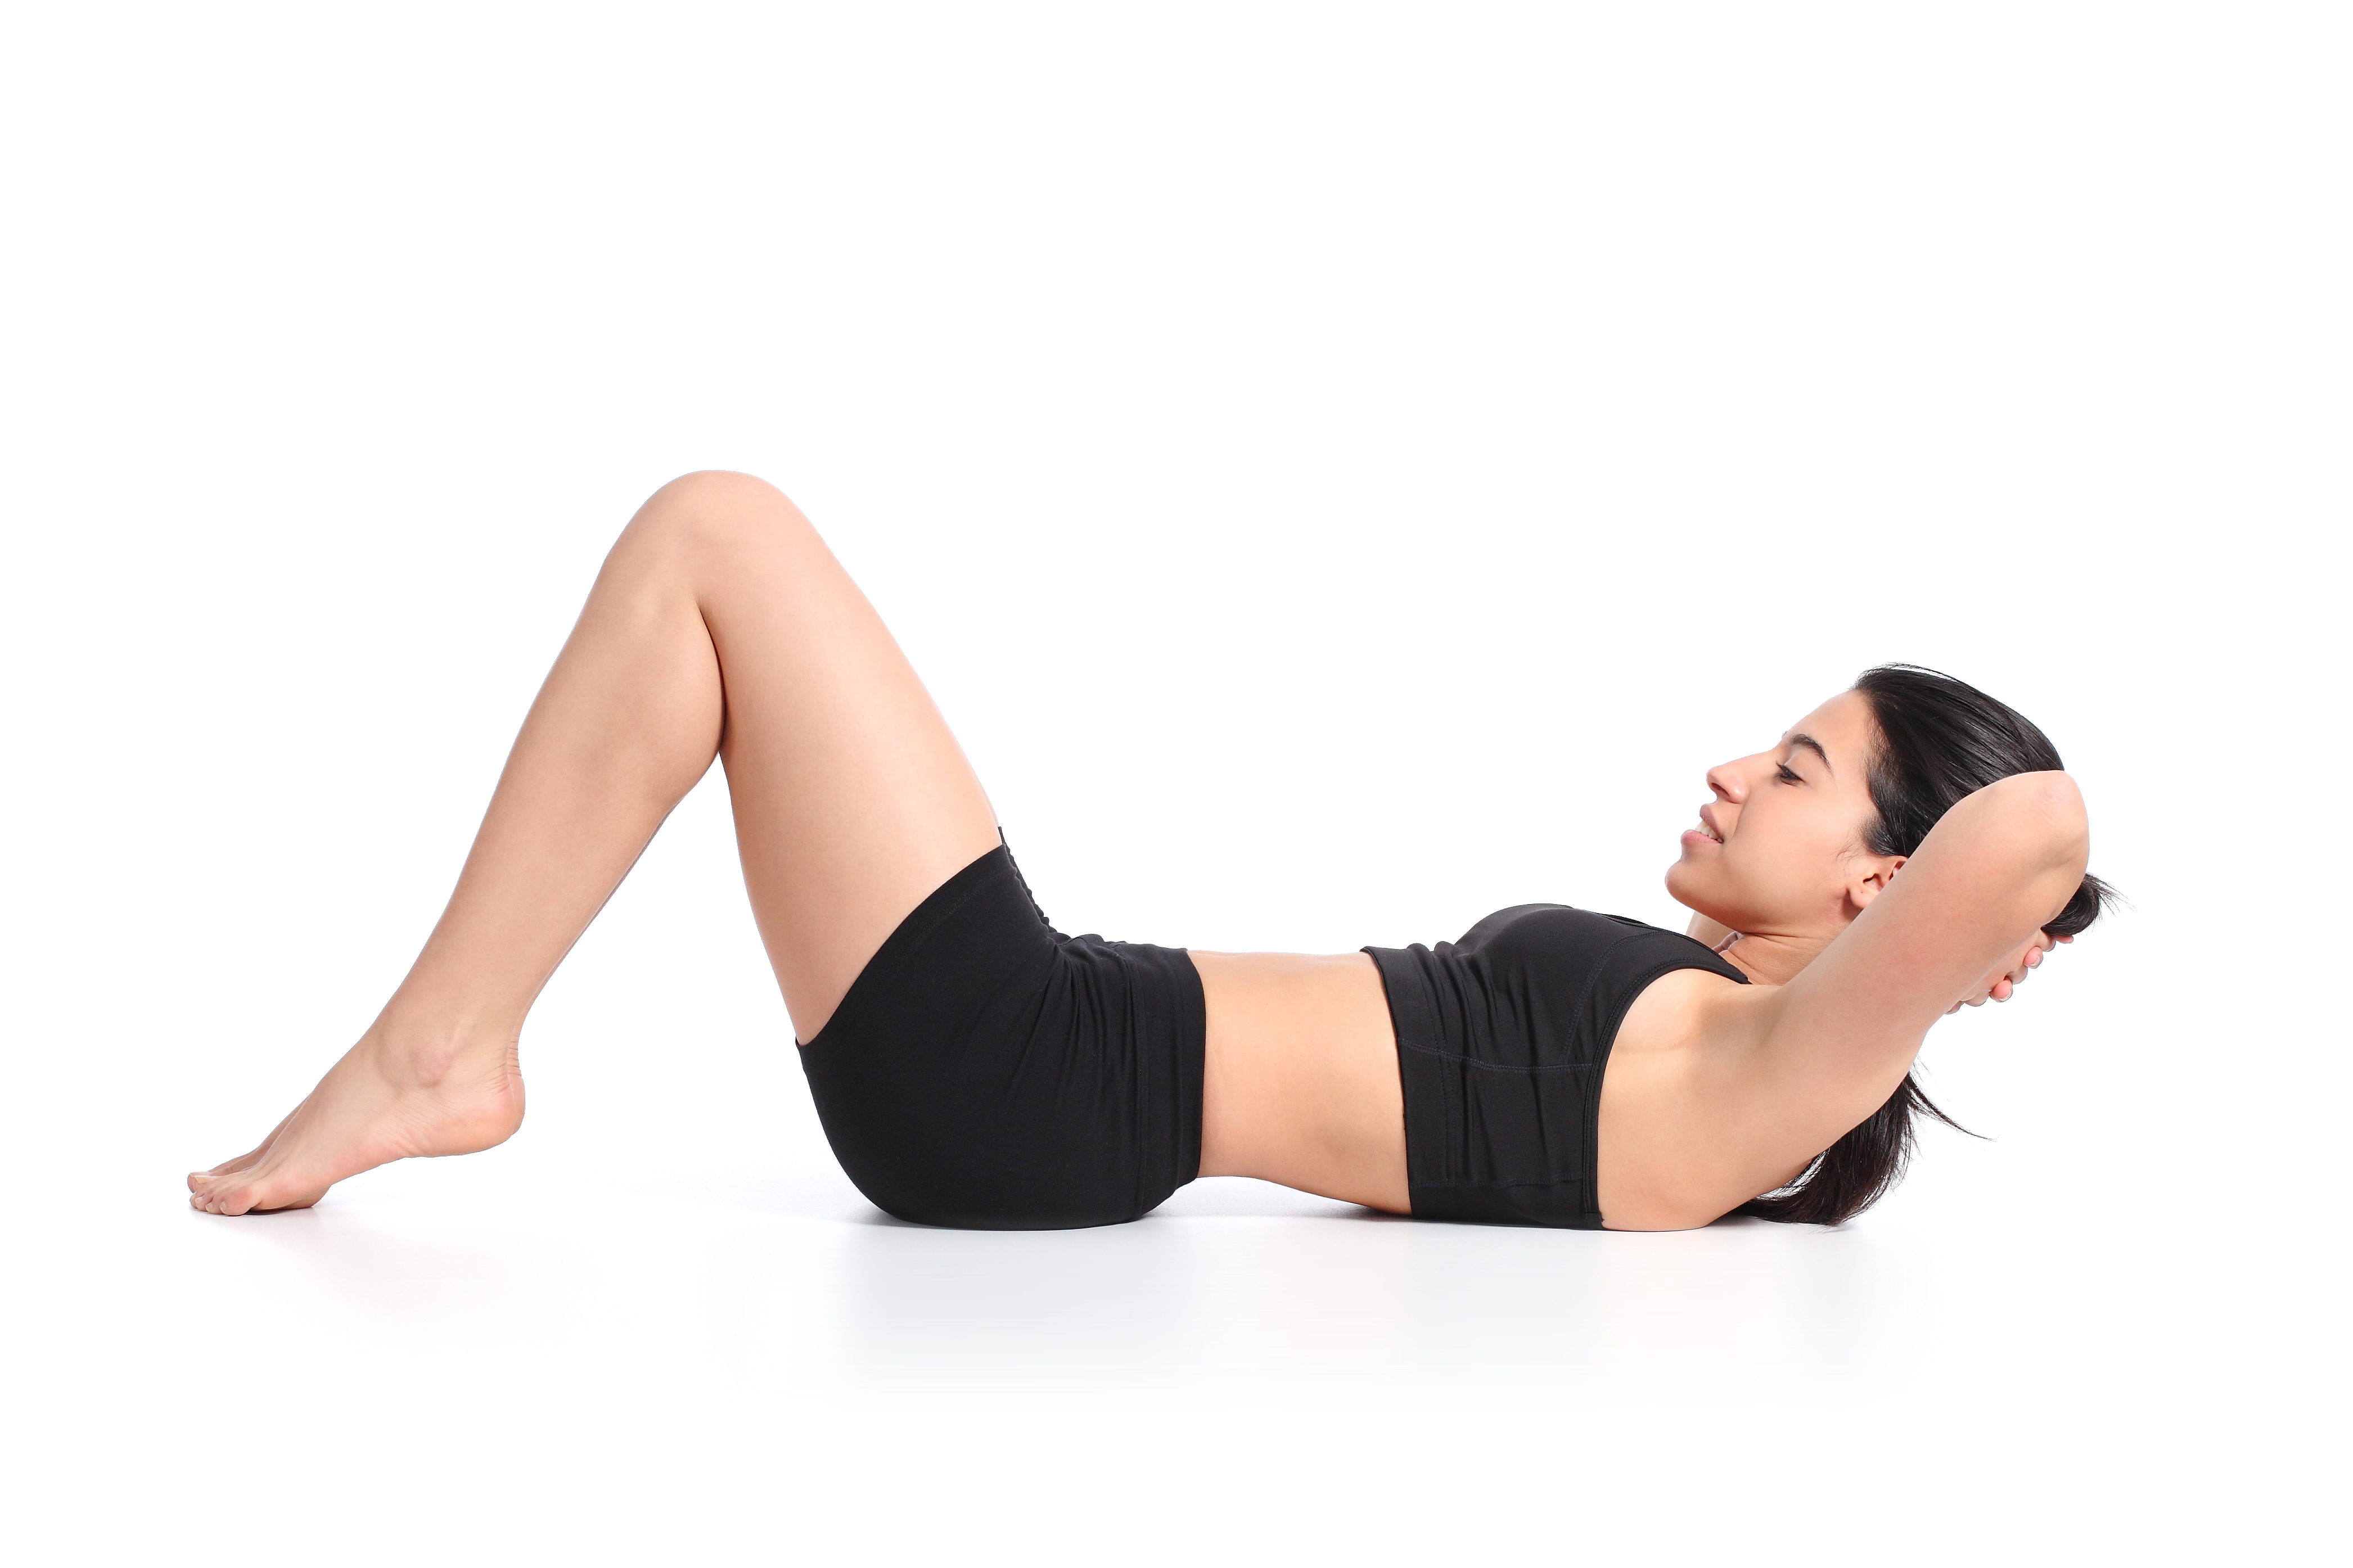 Fitness woman lying doing crunches barefoot isolated on a white background